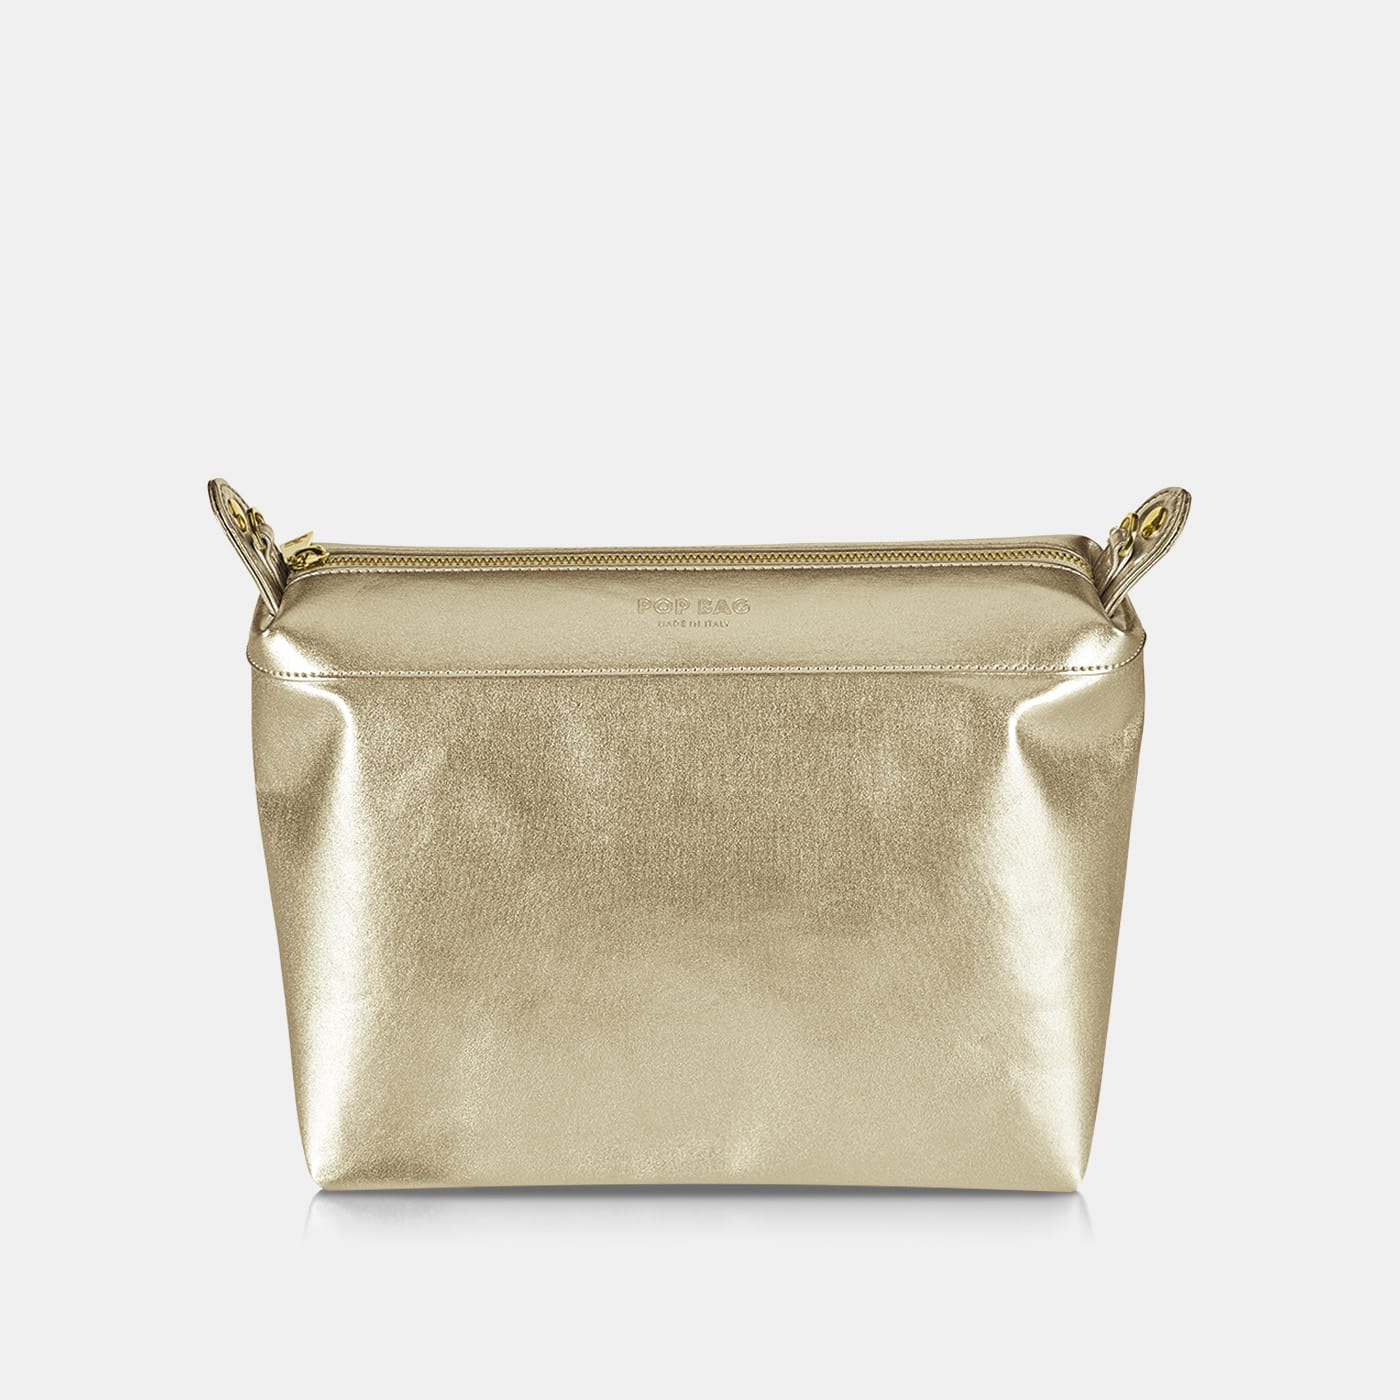 Bag In Bag - Metallic - Platinum Metal - Large